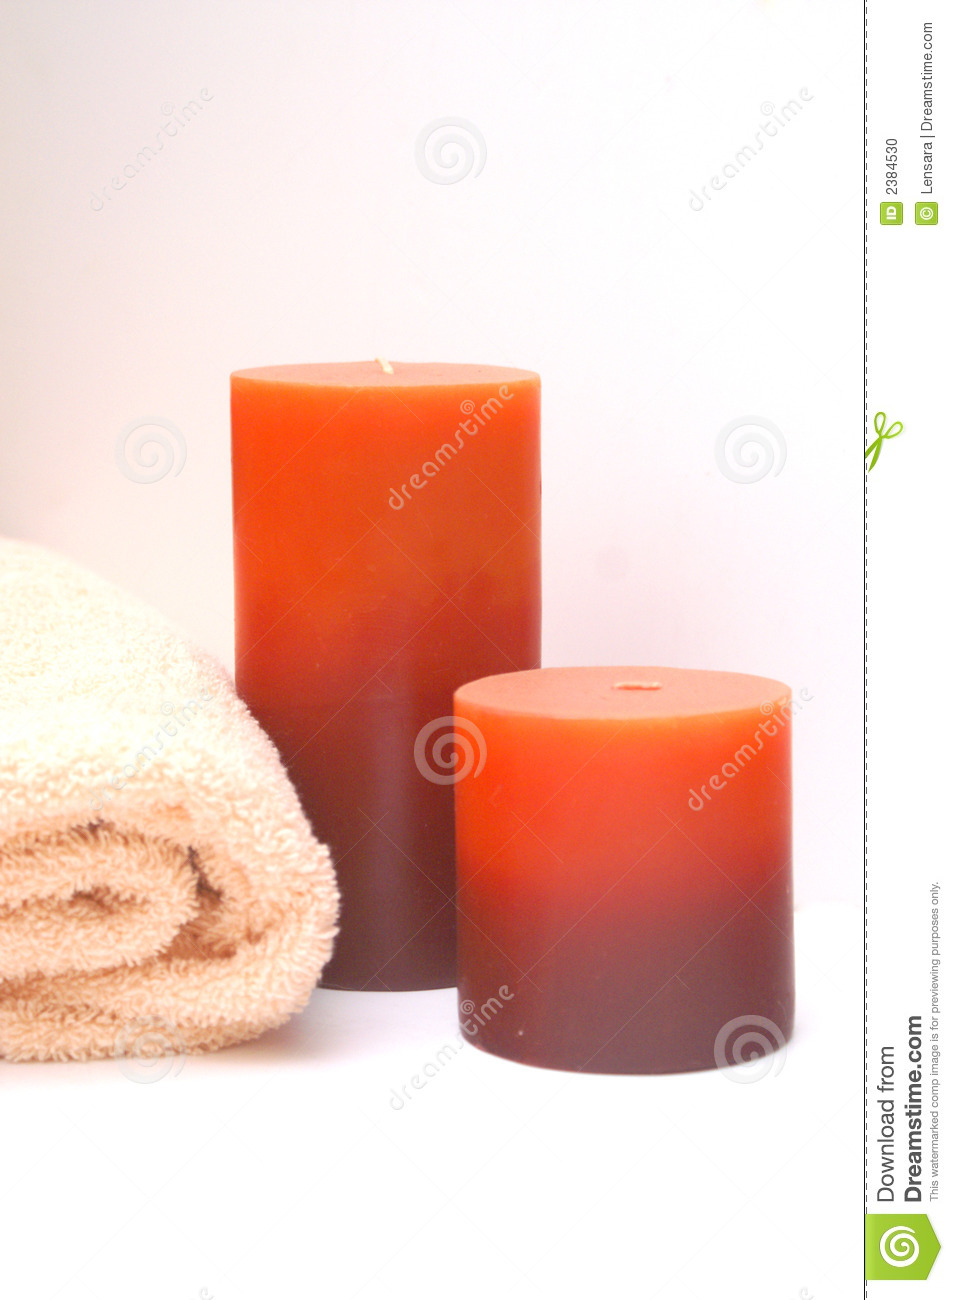 Bathroom Candles Stock Photo Image 2384530